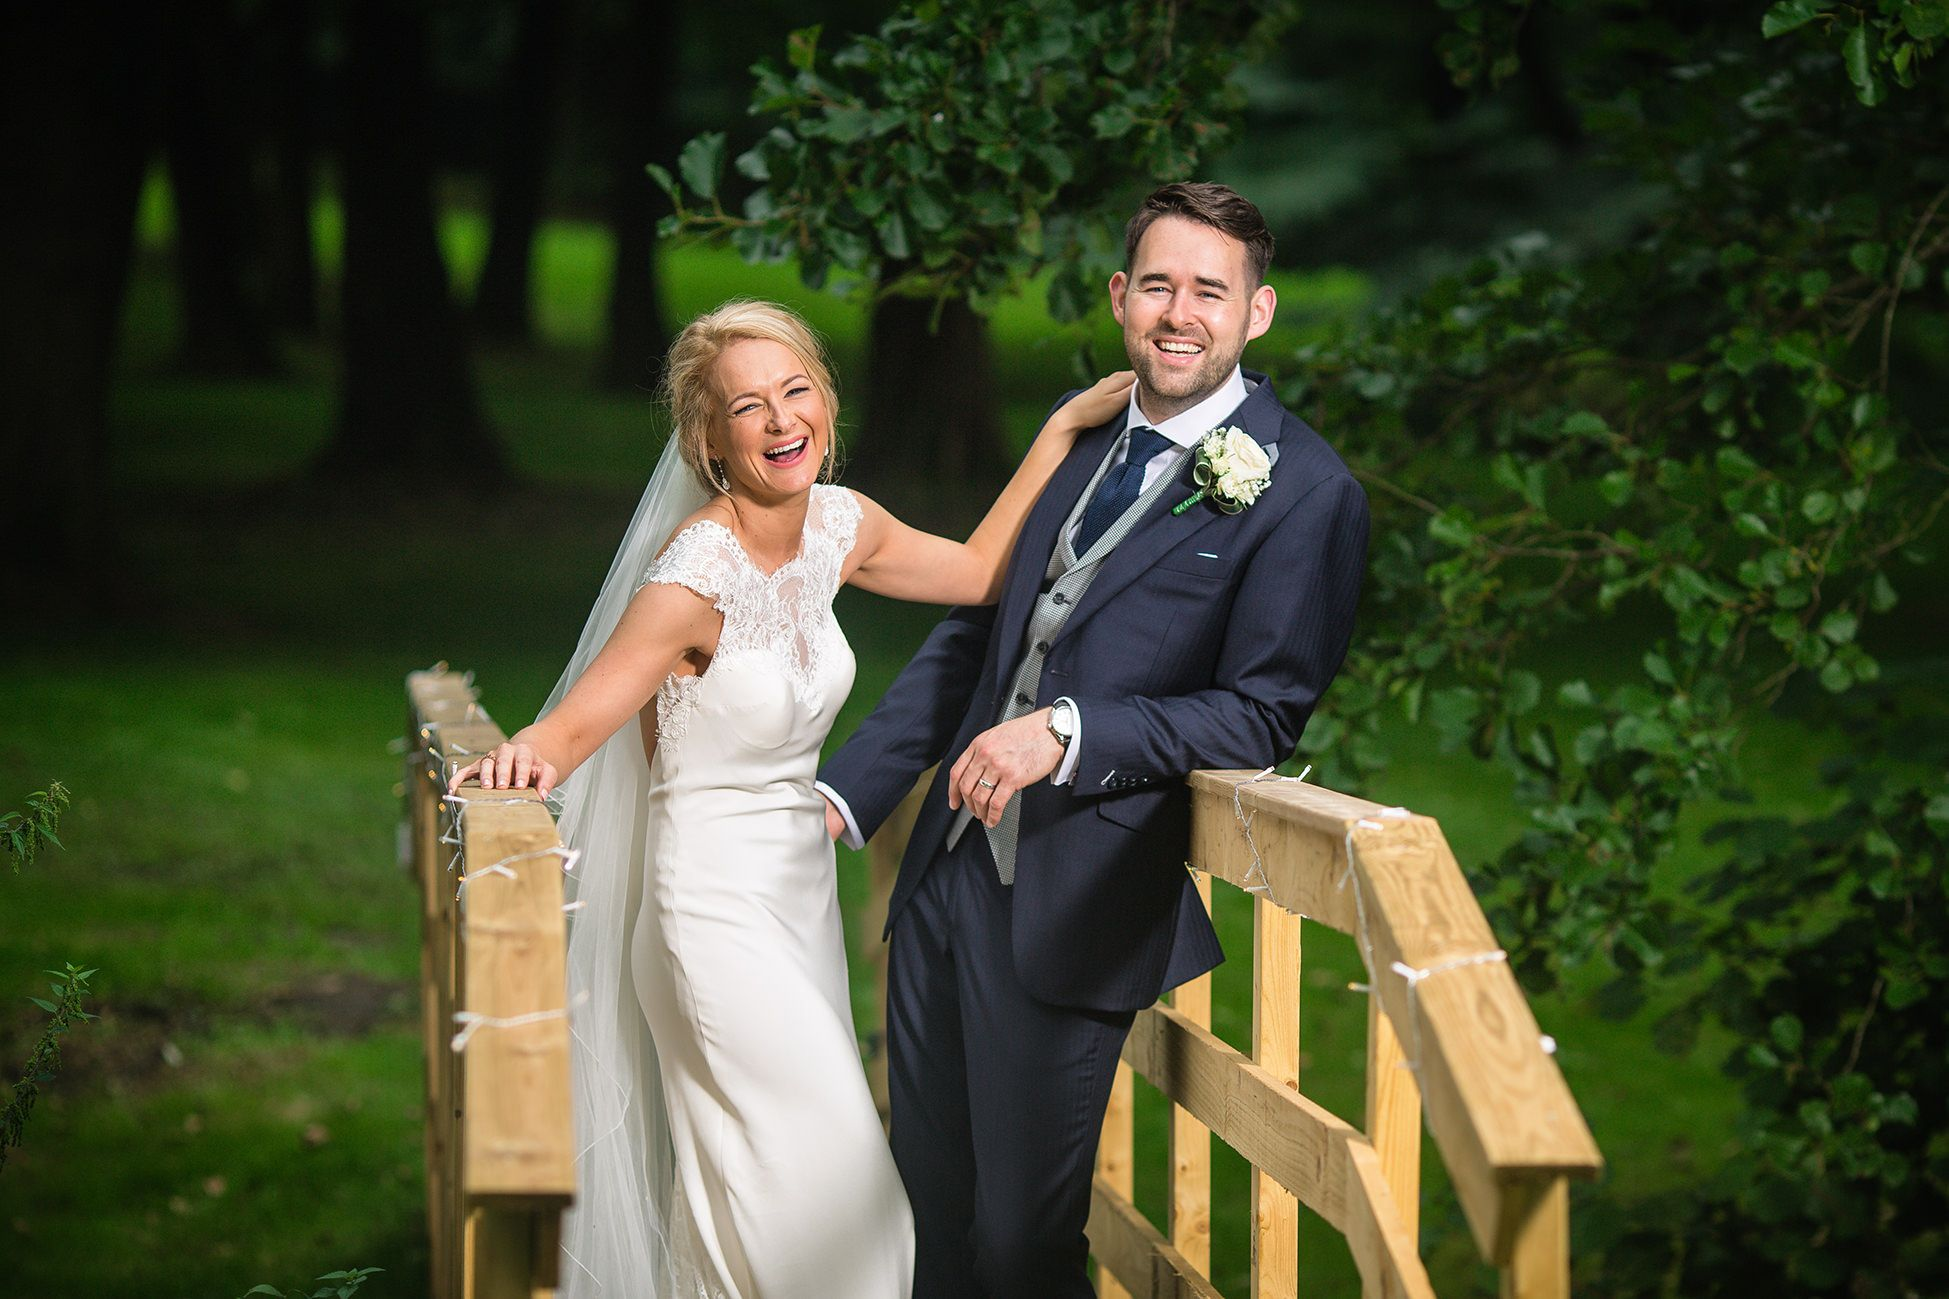 Bride and groom stand laughing on a wooden bridge in the garden of their Cheshire Marquee wedding